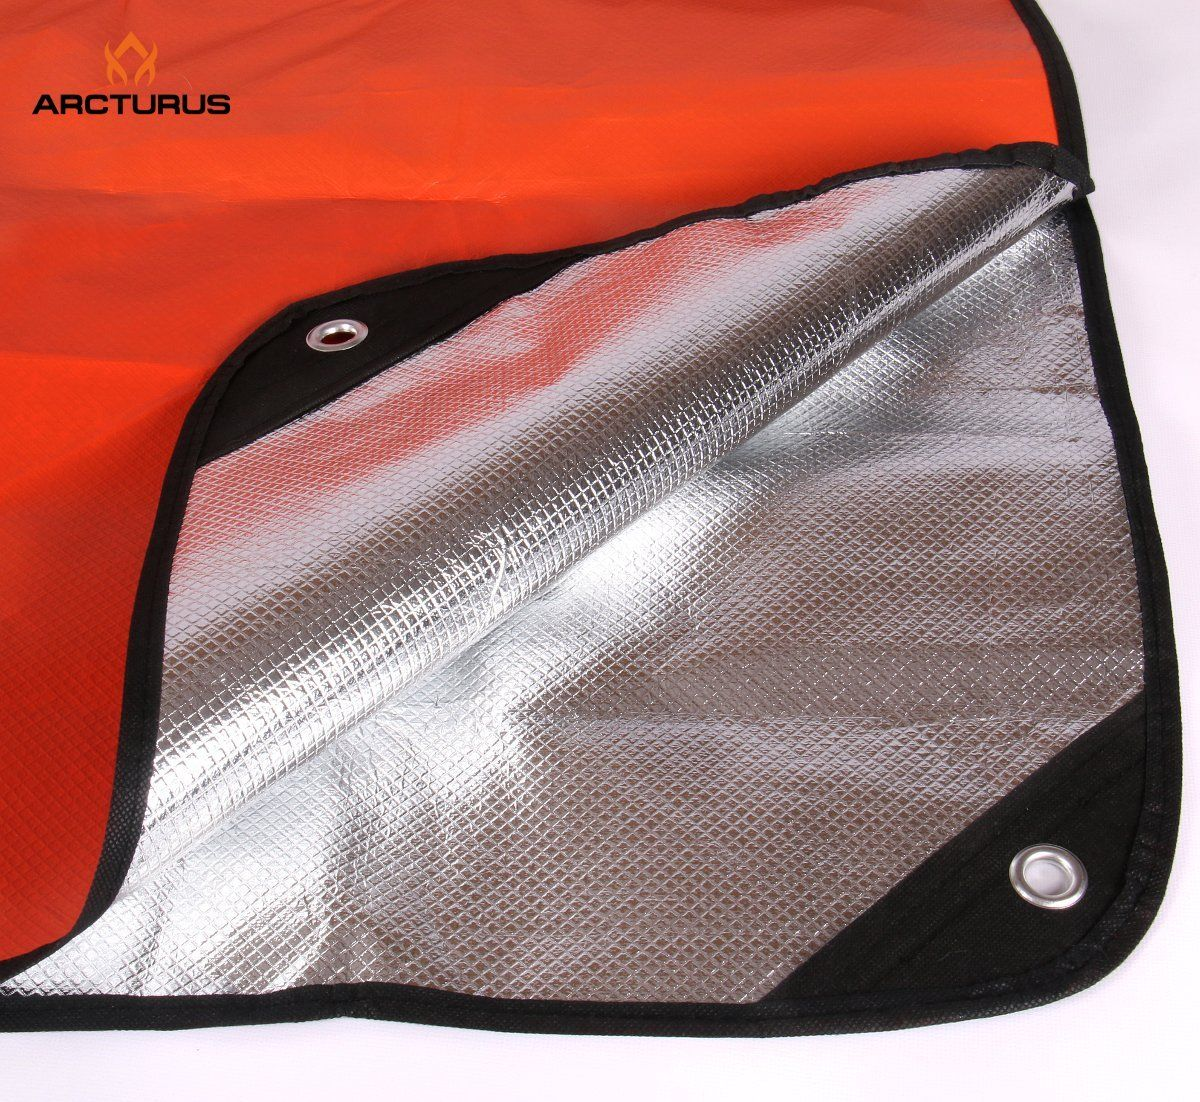 Thermal Reflective Arcturus All Weather Outdoor Survival Blanket All Purpose